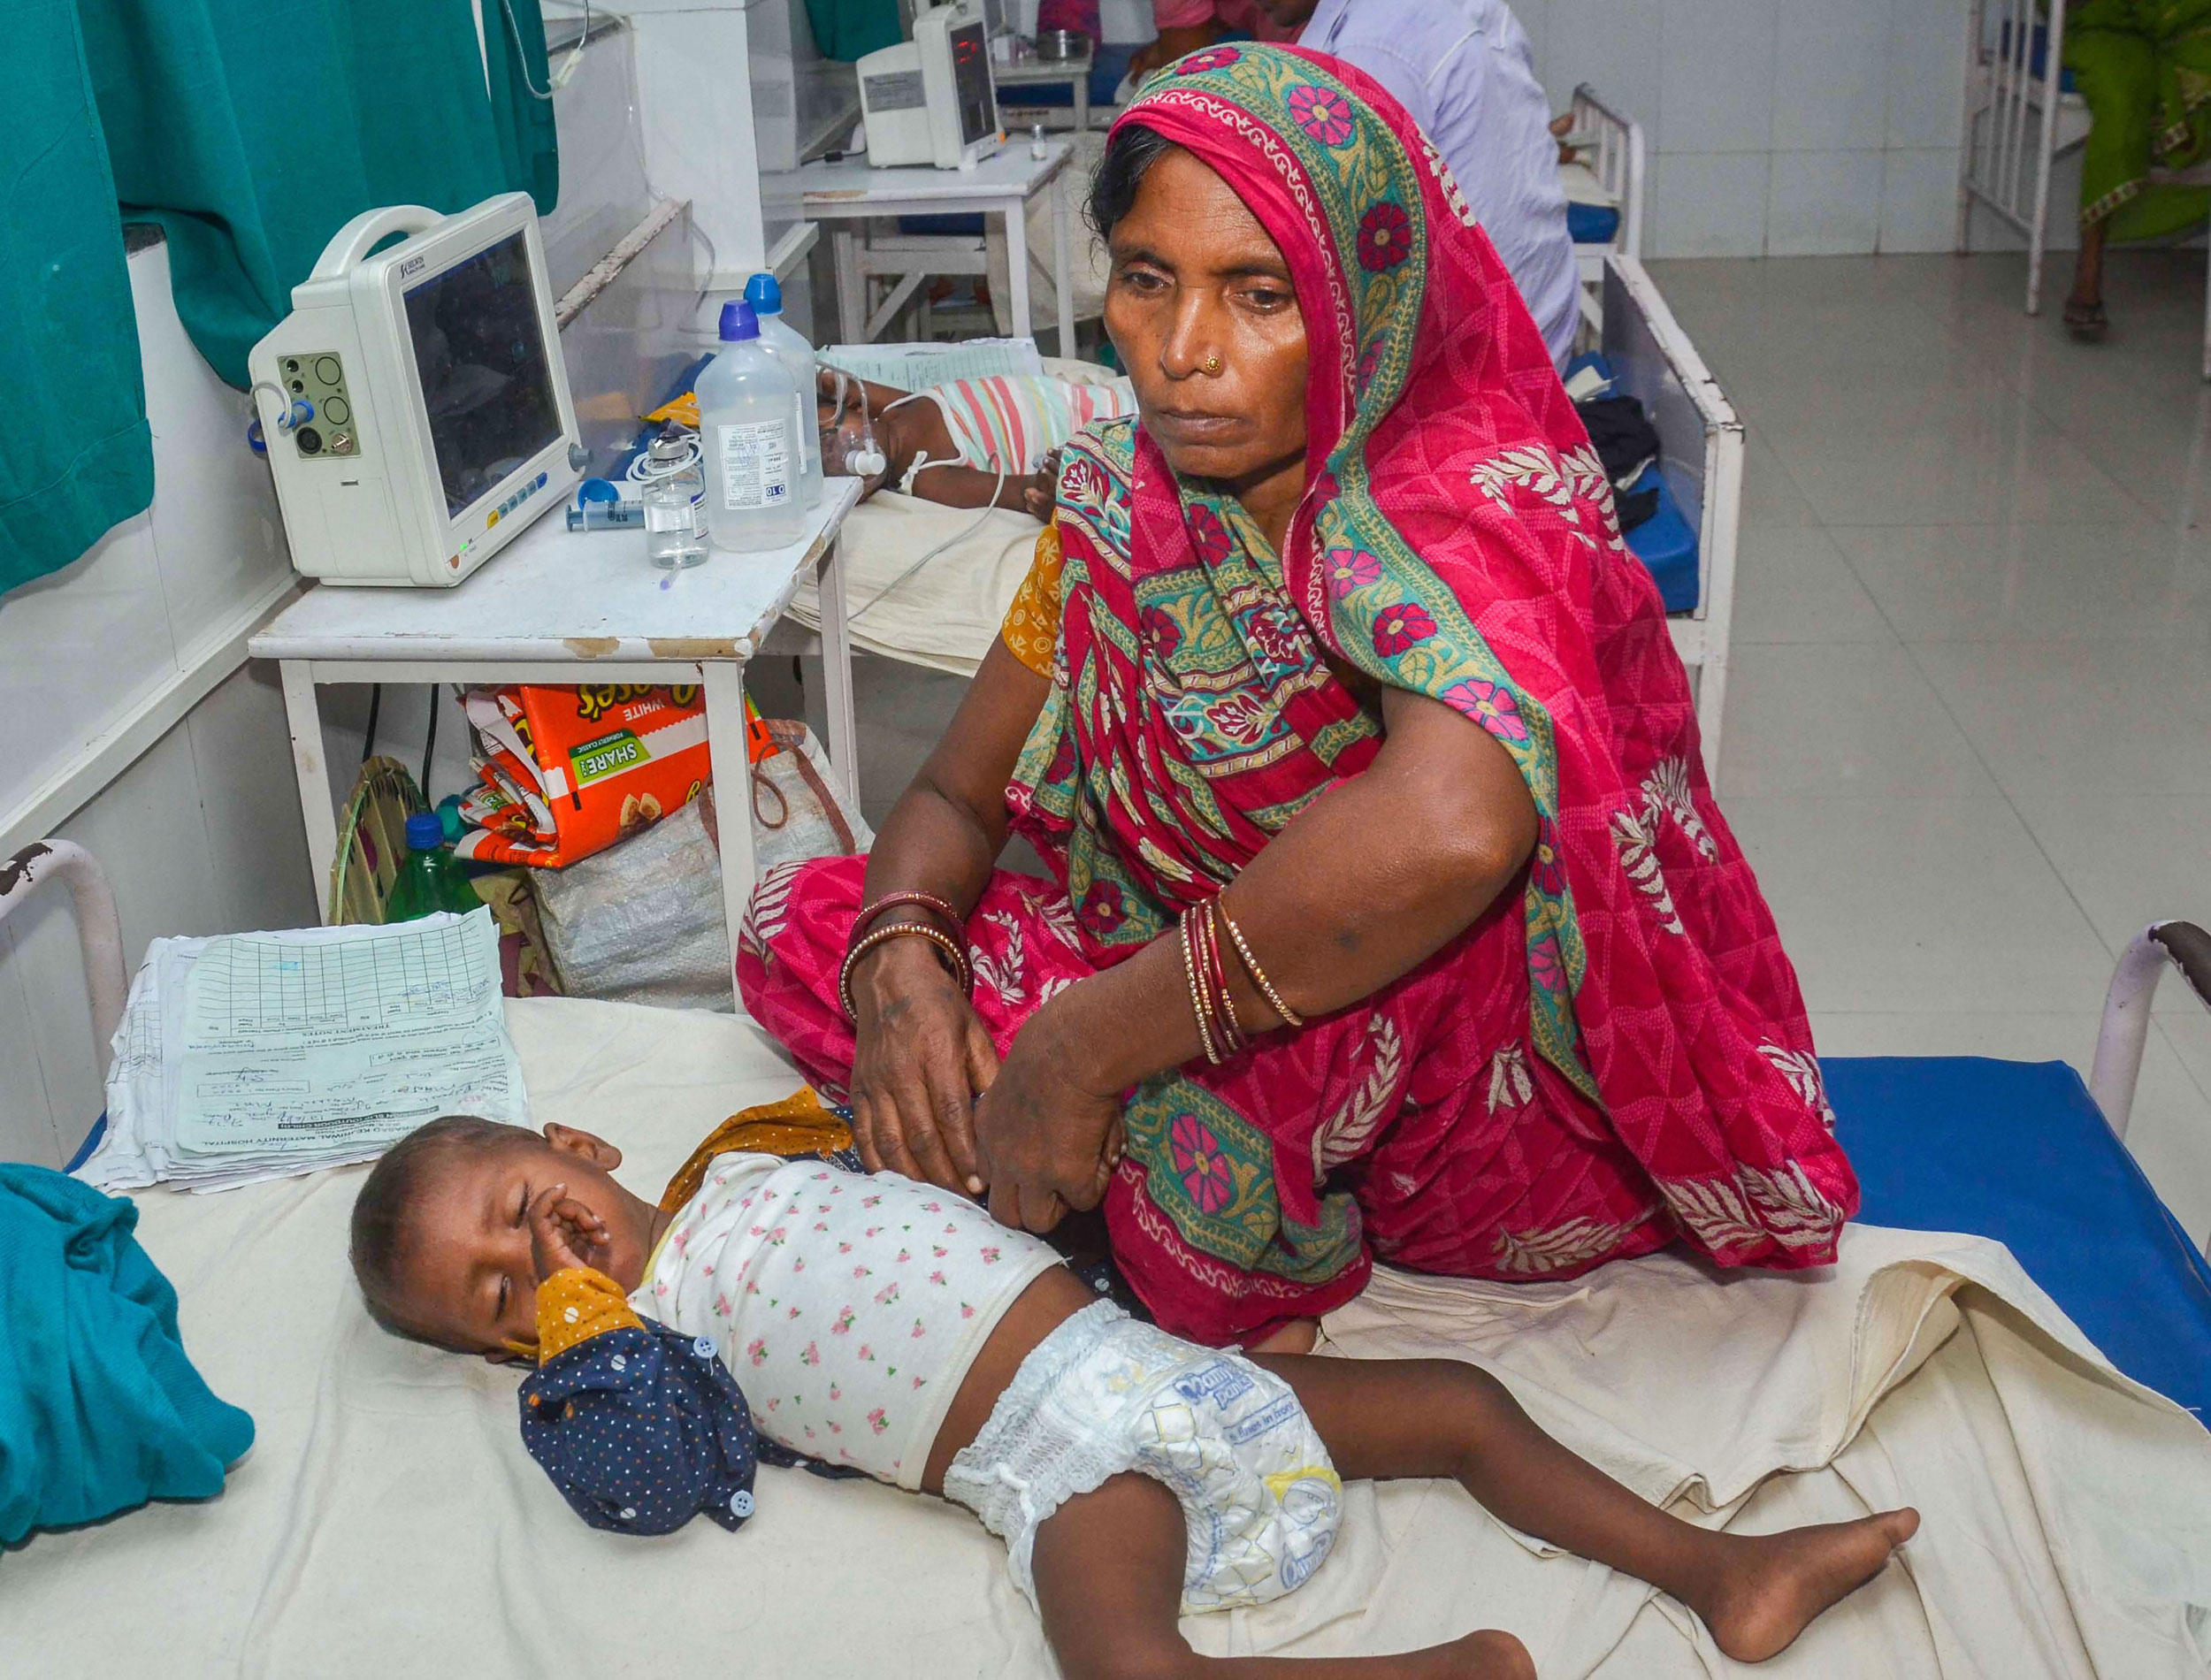 A child suffering from acute encephalitis syndrome being treated at a hospital in Muzaffarpur on June 22, 2019.